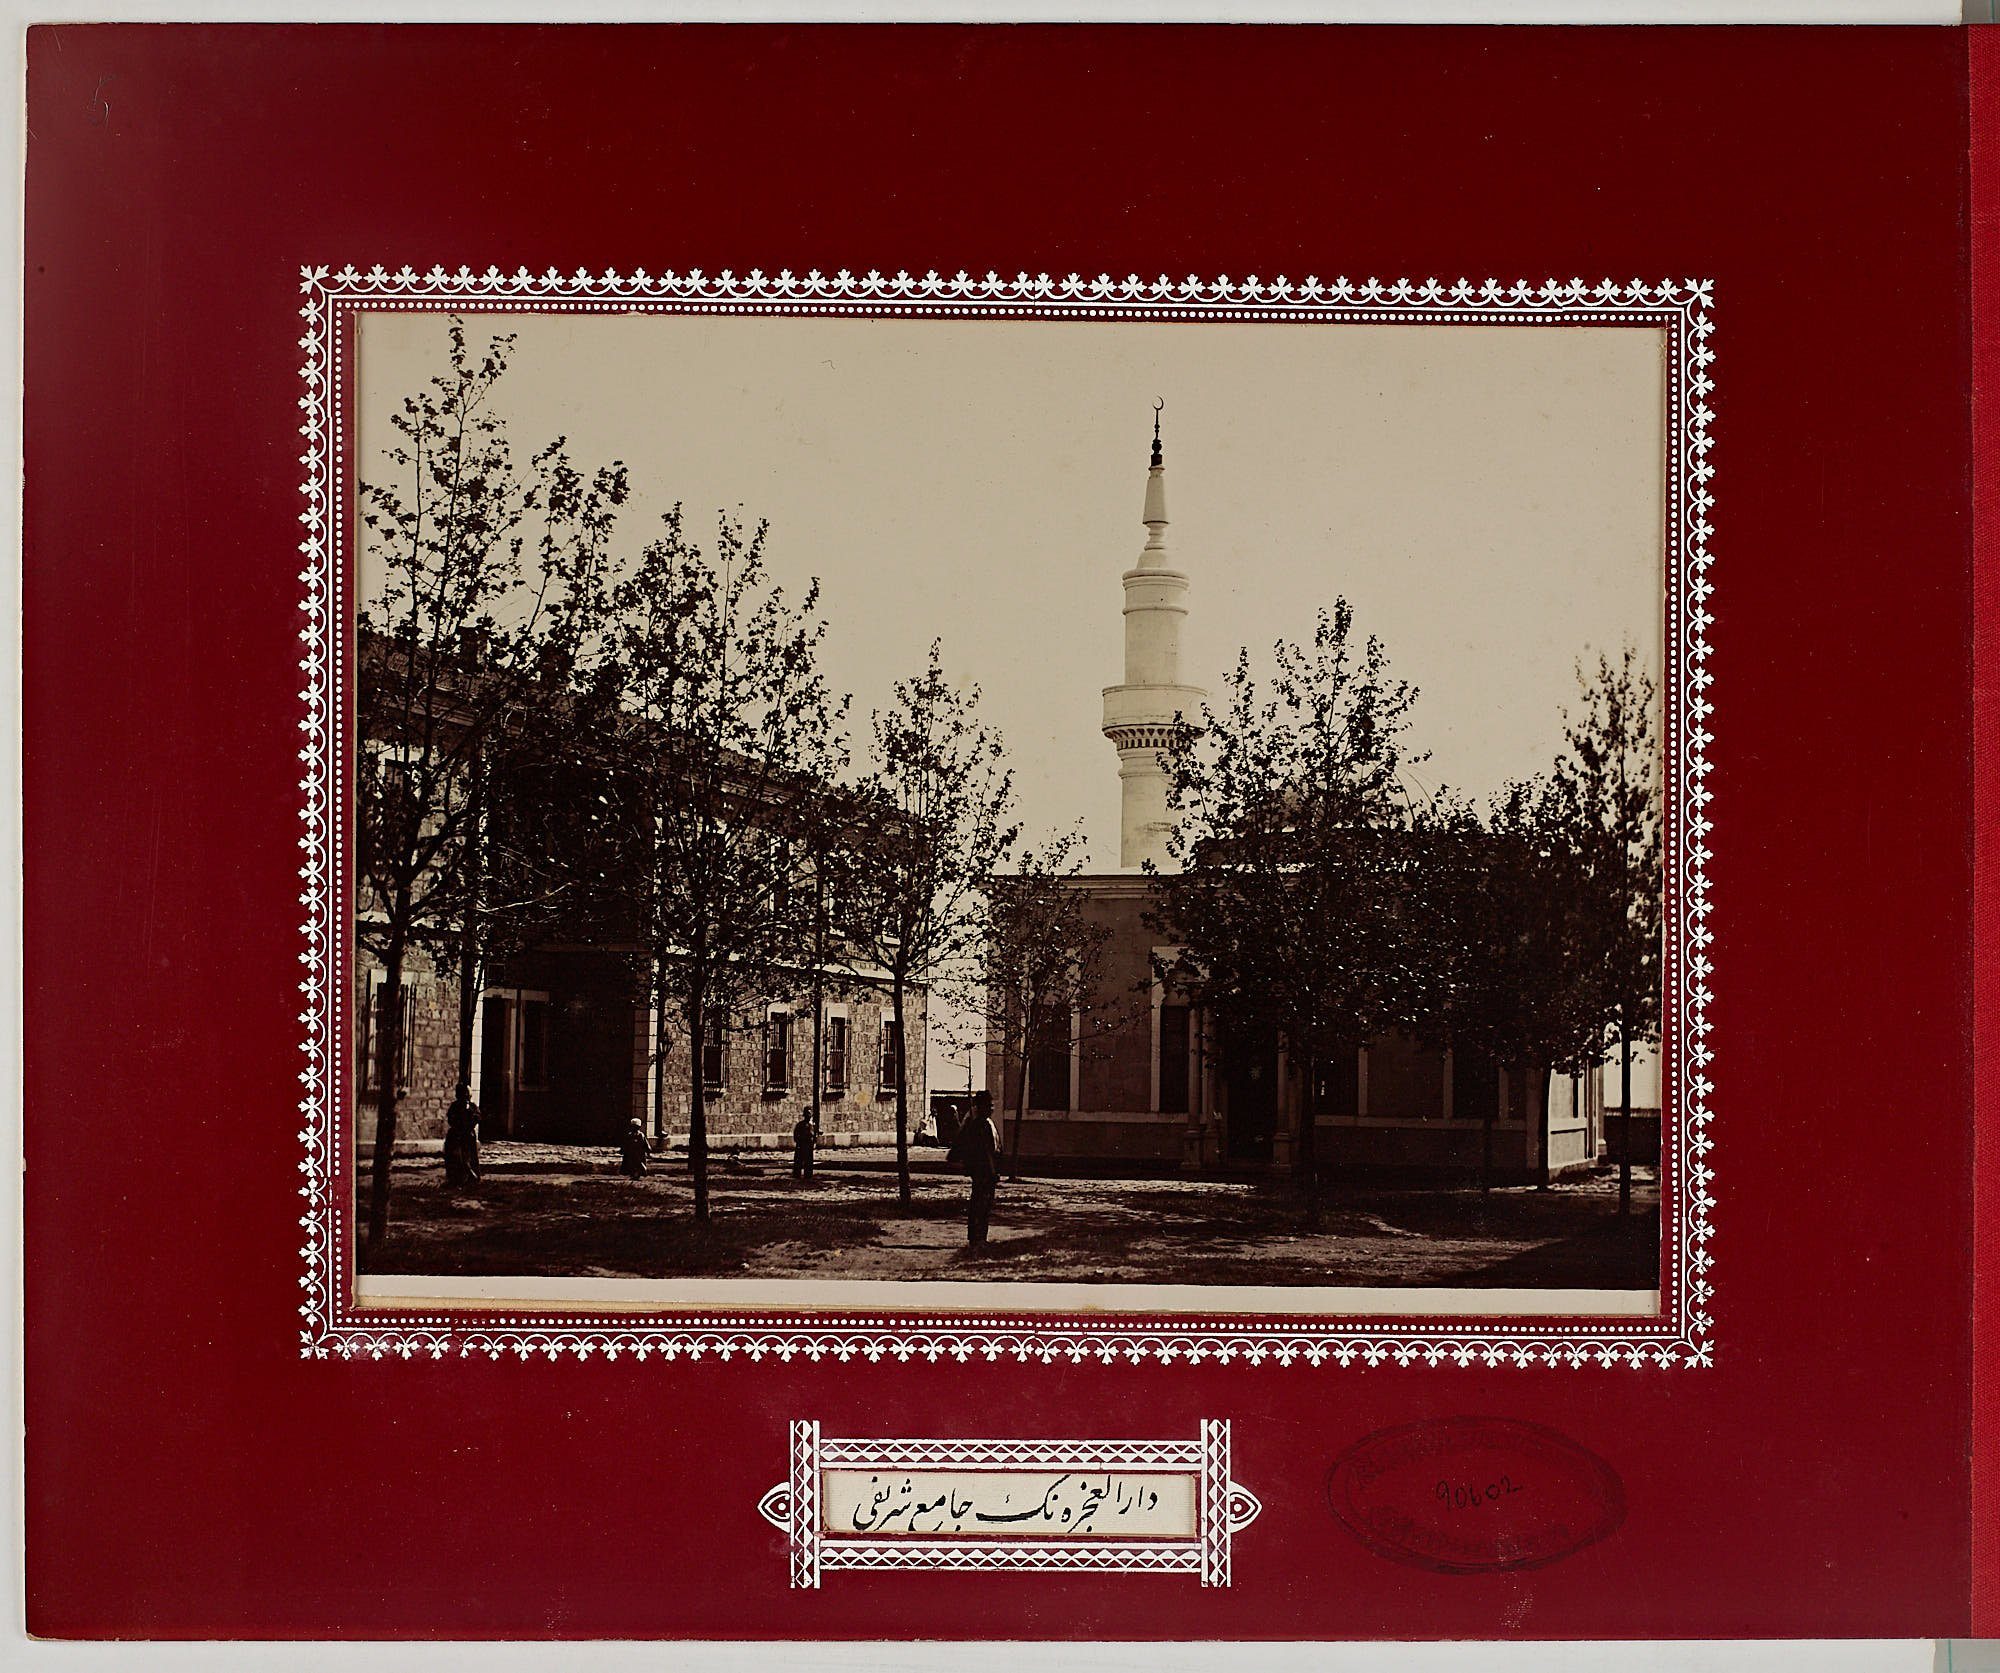 Darülaceze Mosque's photo by Sultan Abdülhamid II from the collection. (Courtesy of Istanbul University)